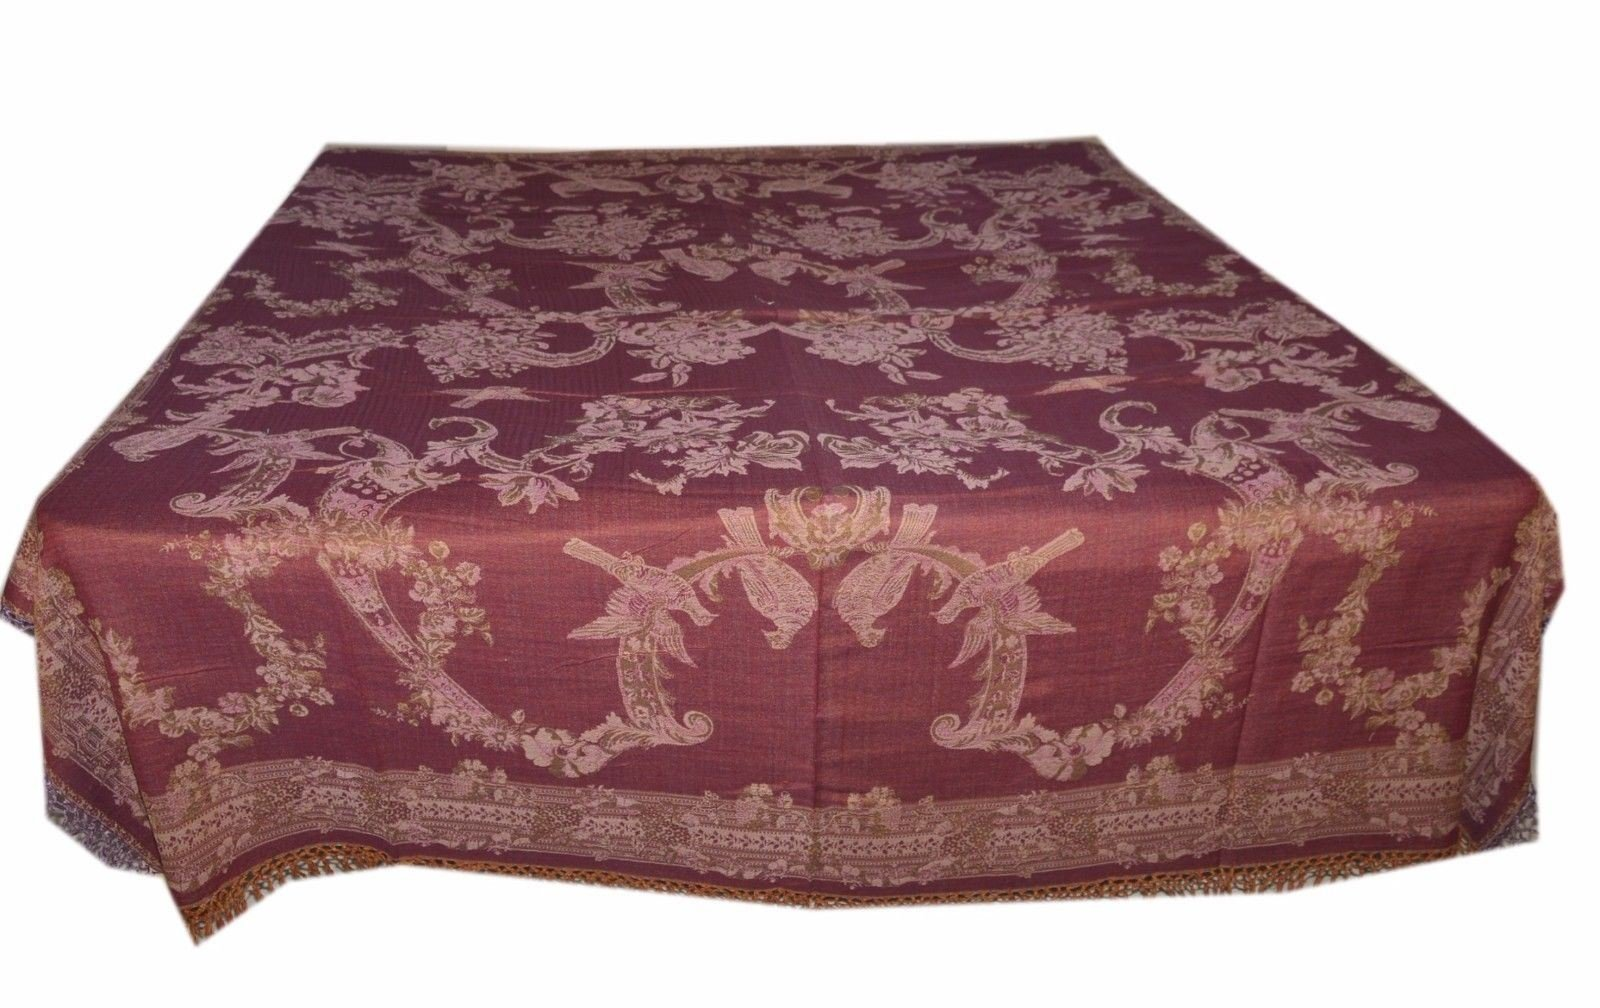 Blanket Throw Tree Of Life Bedspread Wool Indian Bedding Sofa Cover SL865 by Tribal Asian Textiles (Image #2)